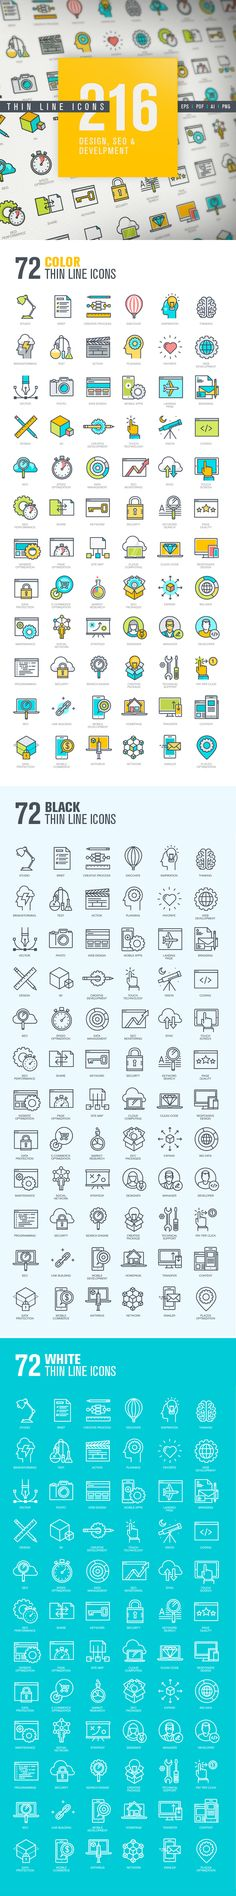 Thin Line Icons for Design, SEO and Development on Behance